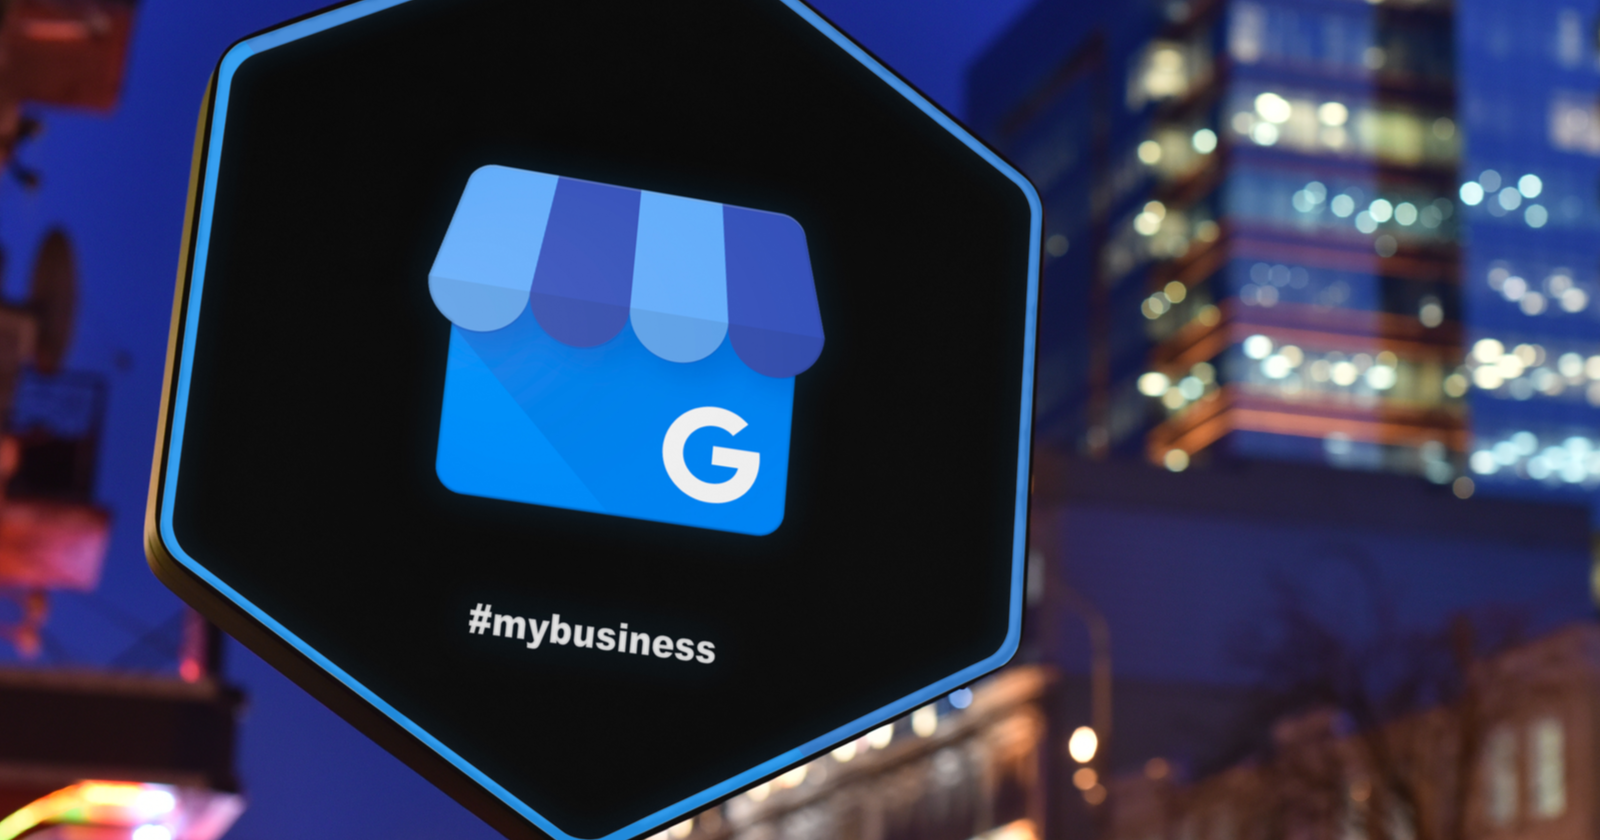 5%-of-google-my-business-listing-views-result-in-a-customer-action-via-@mattgsouthern